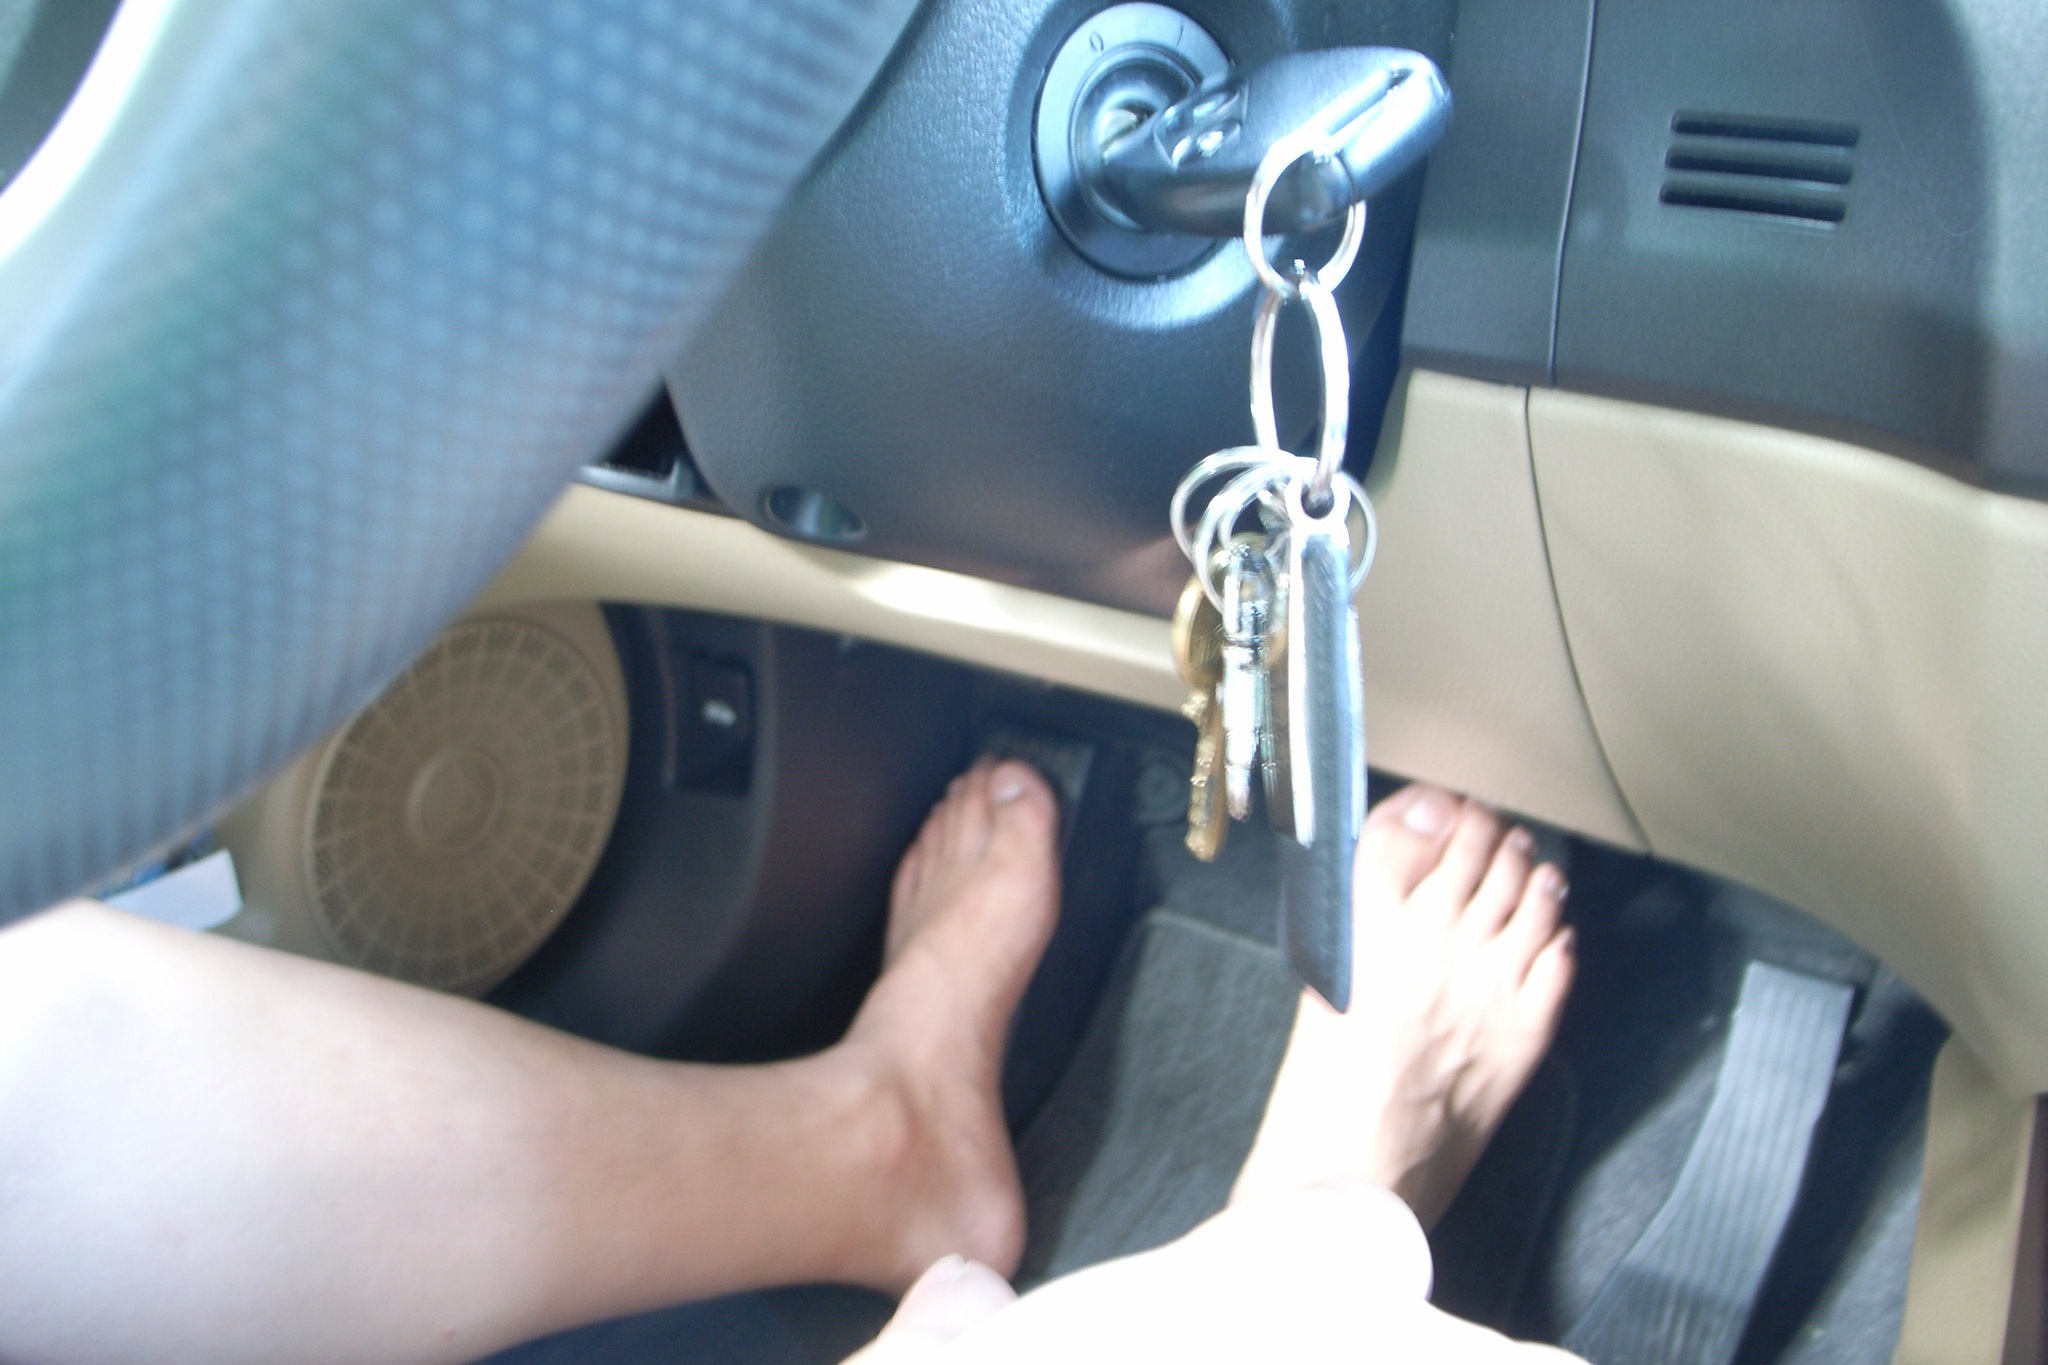 Tall People Driving Barefoot for more legroom